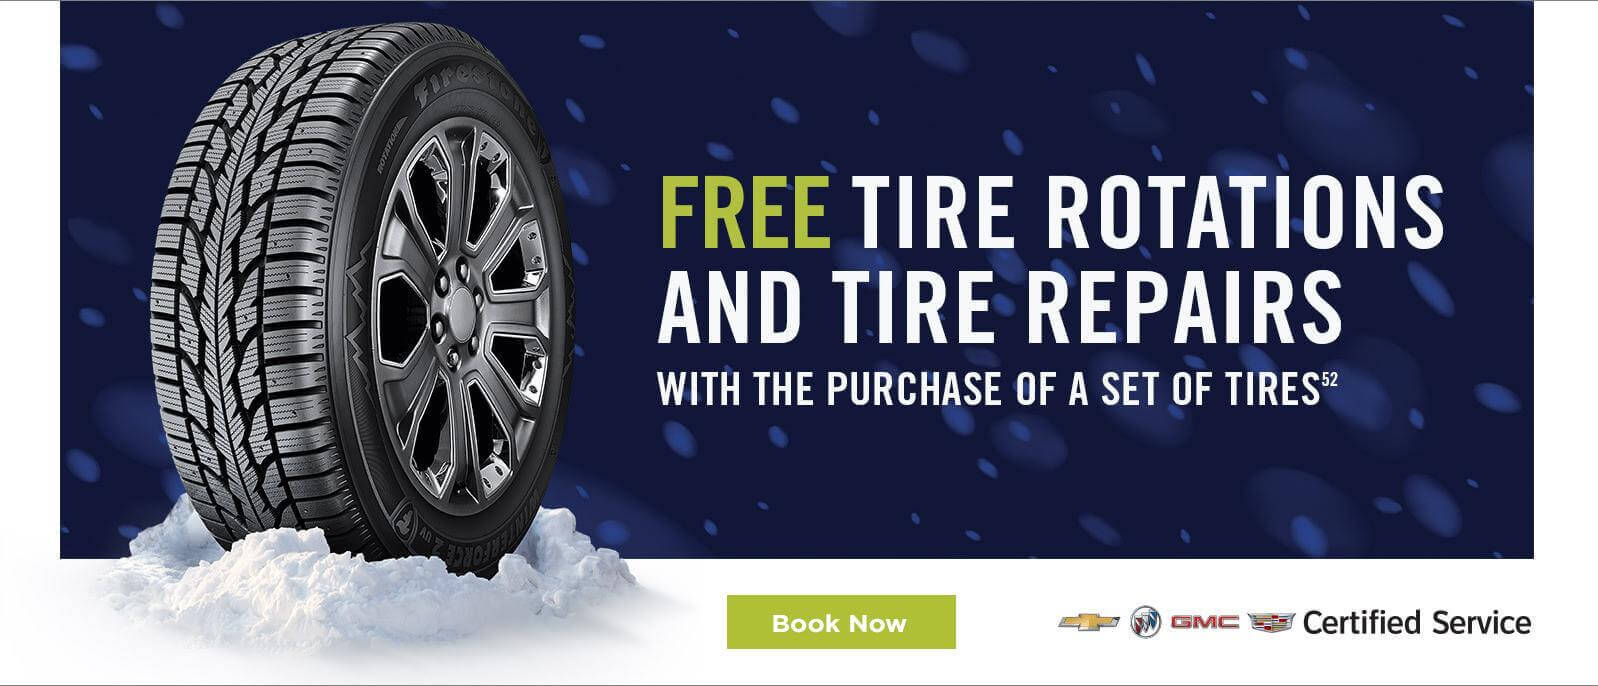 Free Tire Rotations And Tire Repairs